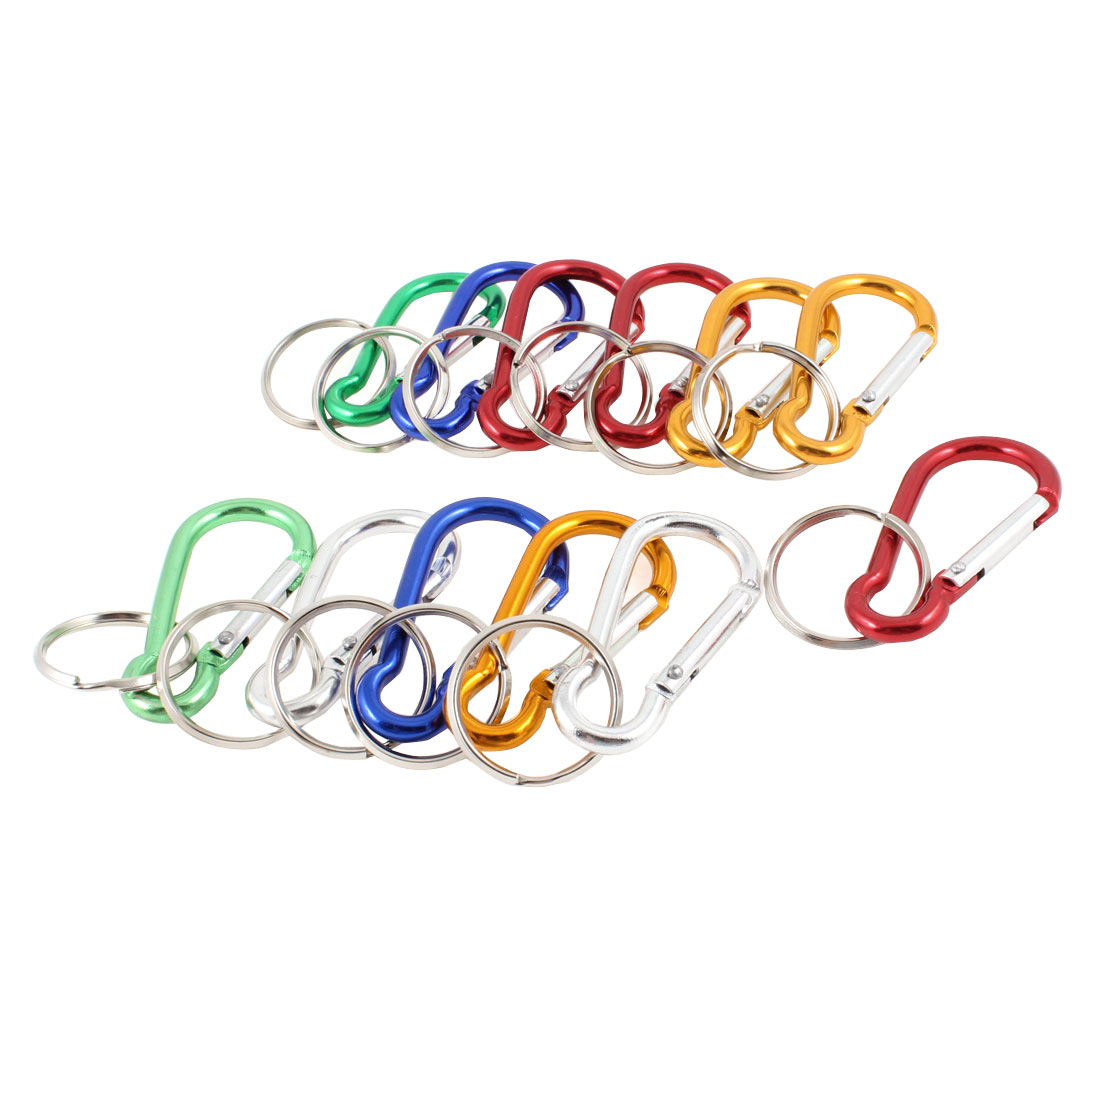 Multicolor Aluminum Spring Loaded Gate D Shaped Keychain Carabiner 12 Pcs